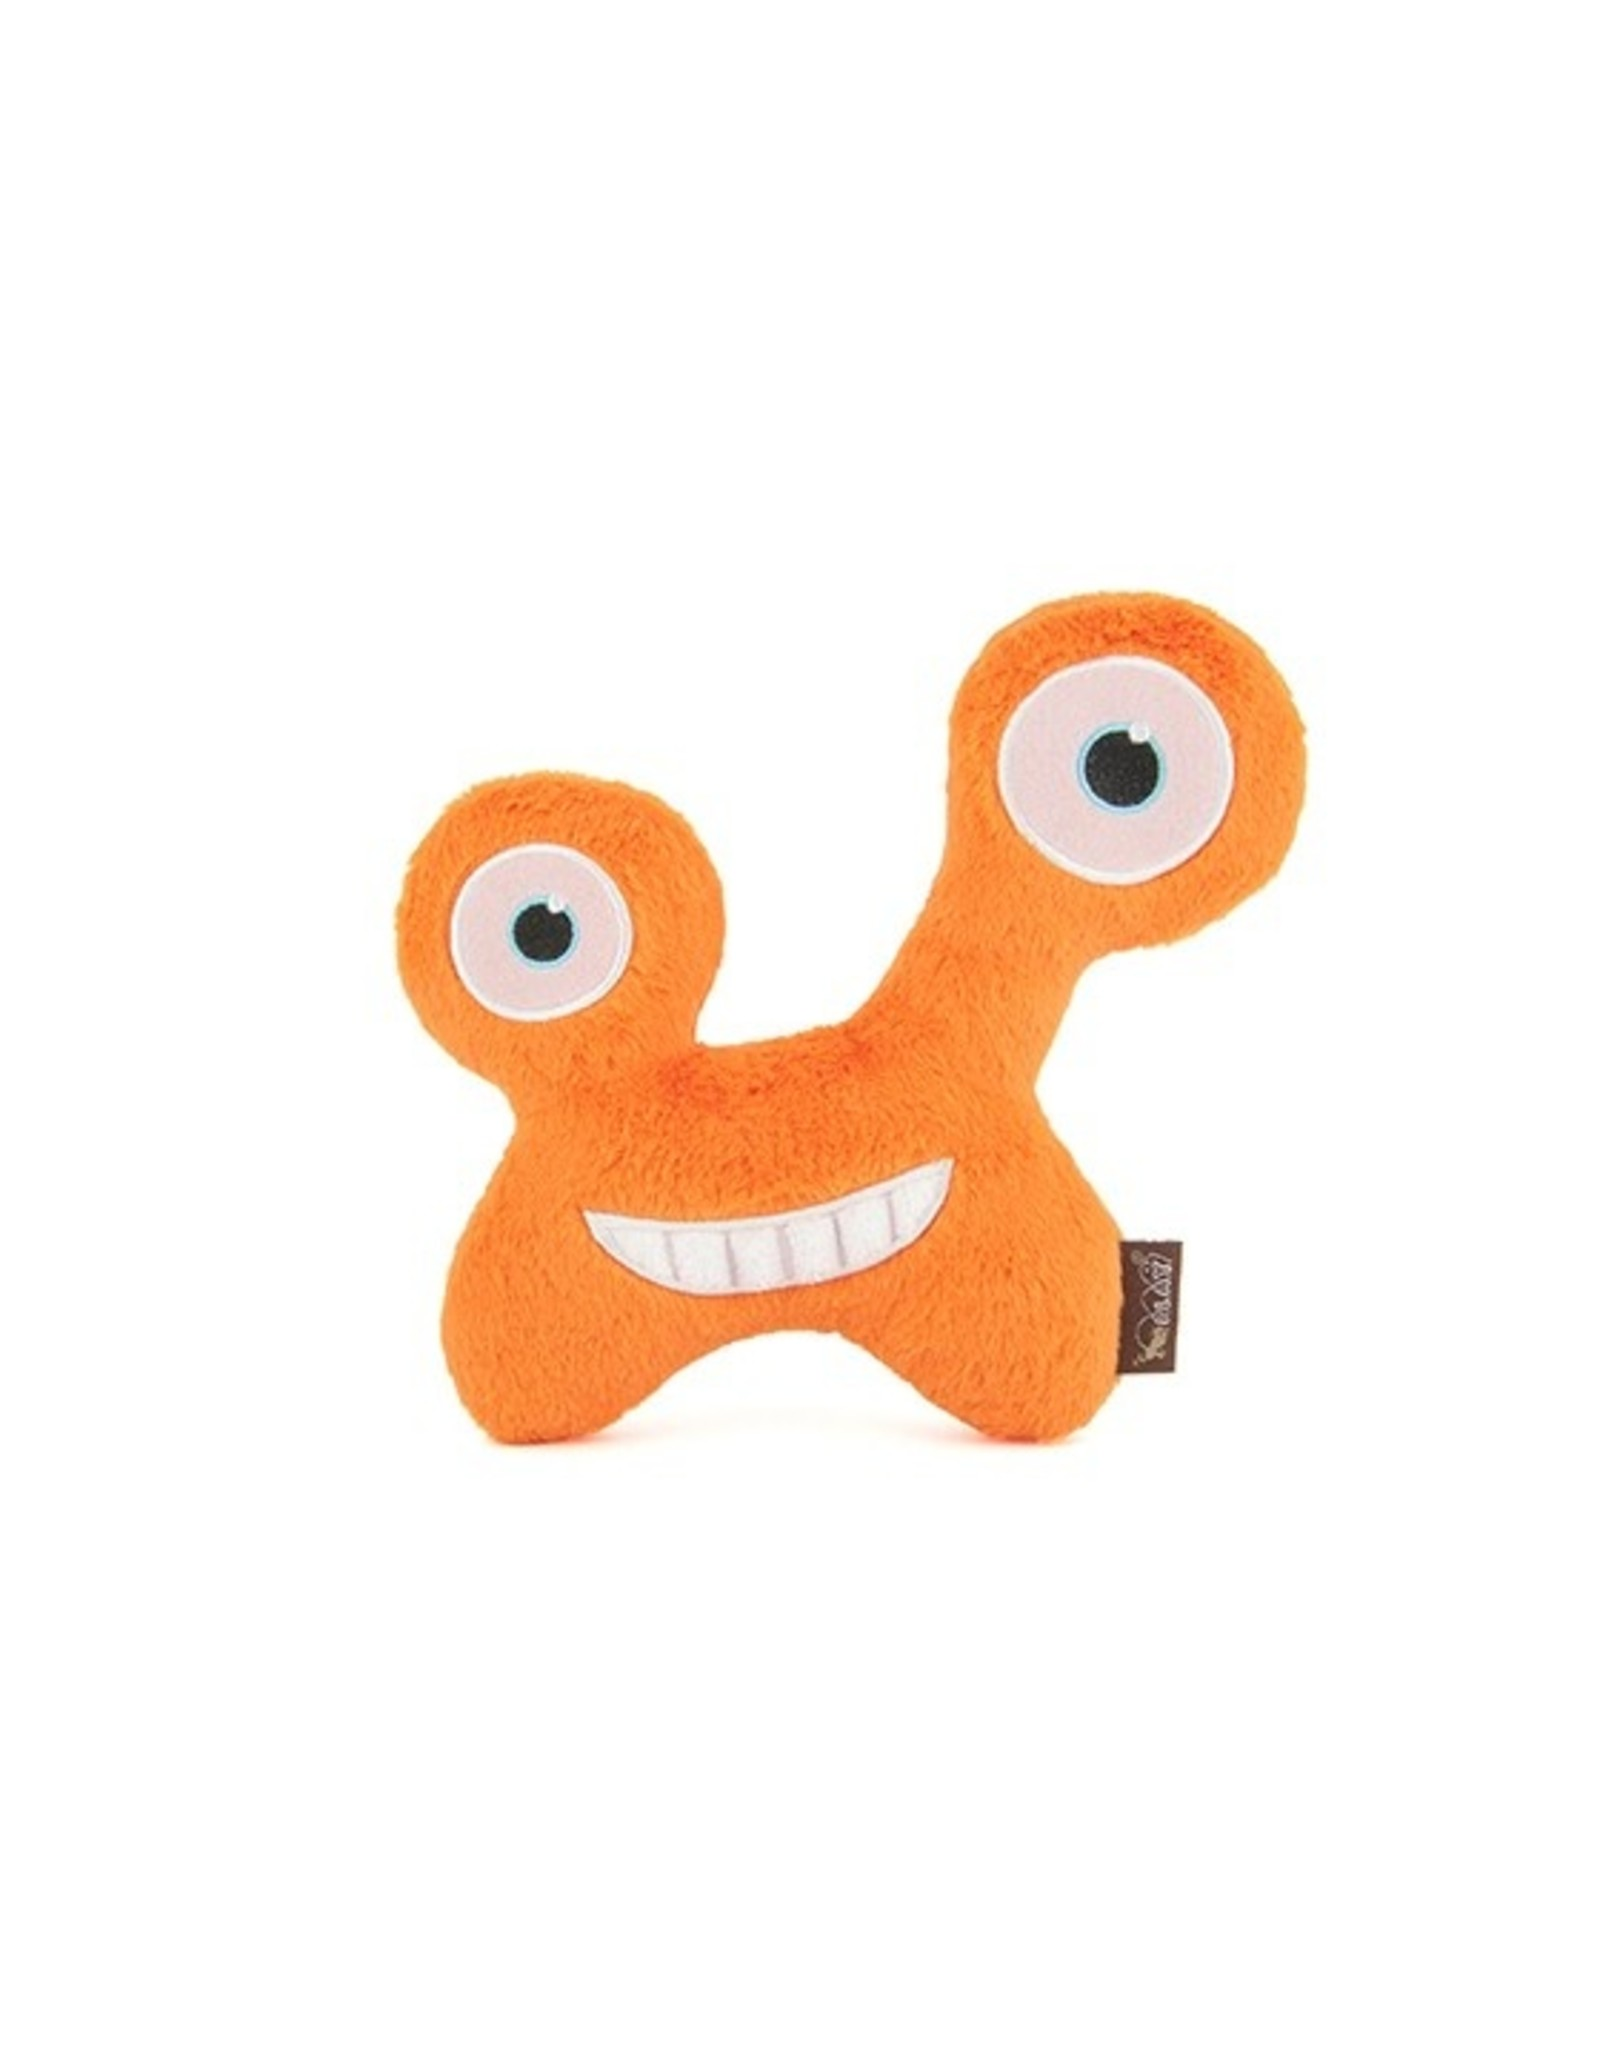 PLAY PLAY Monster Chatterbox